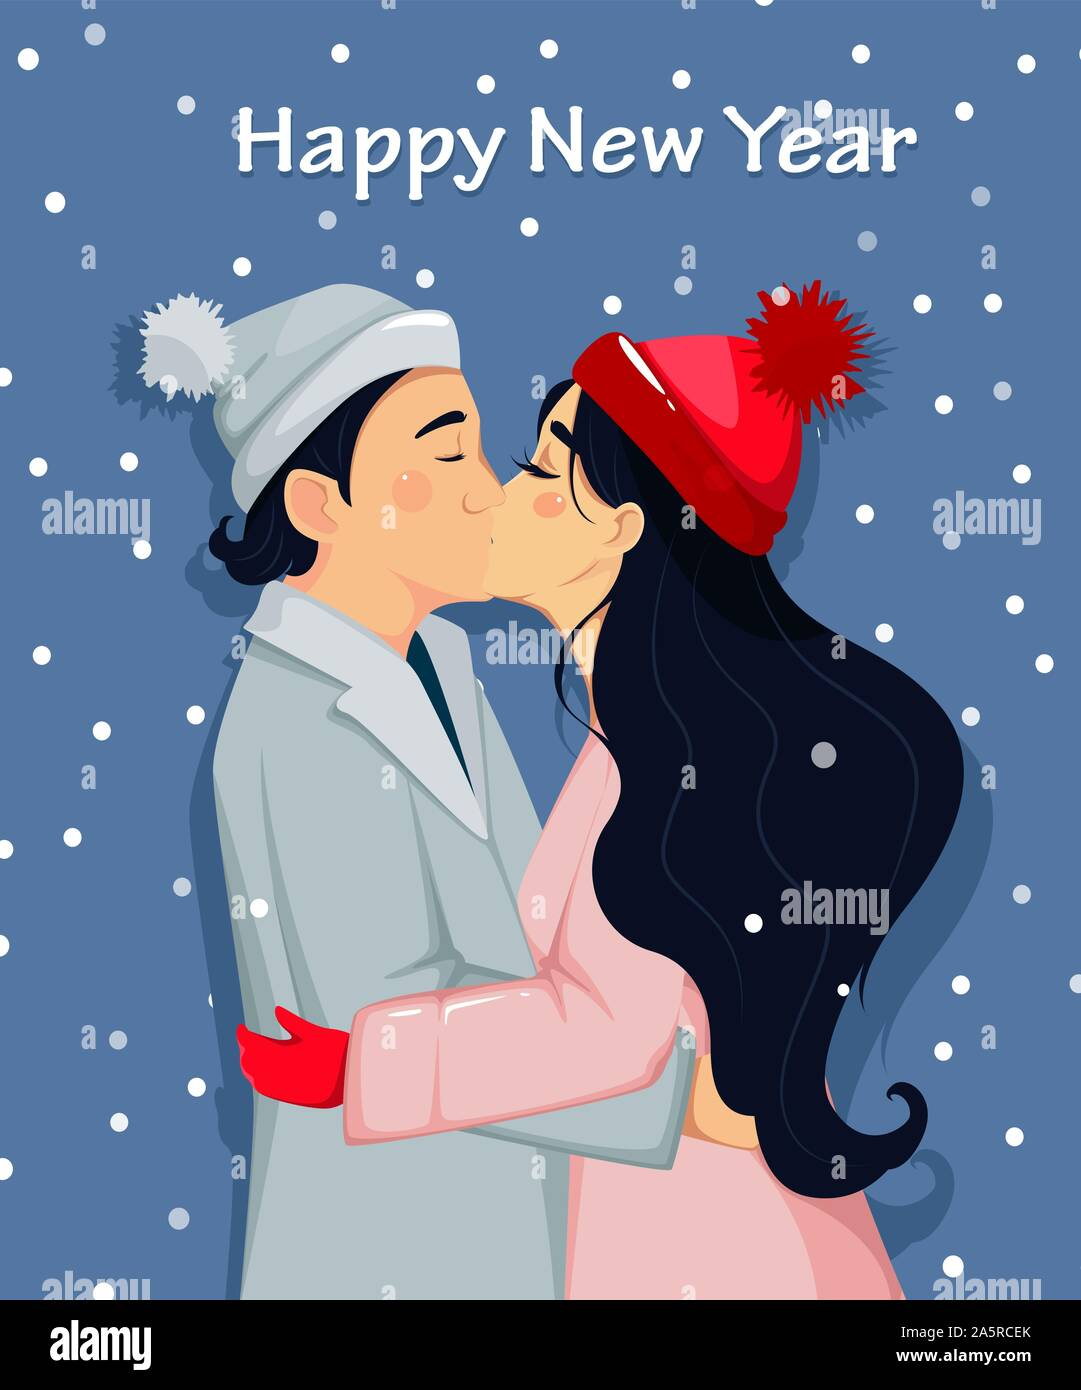 Happy New Year Beautiful Couple Kissing Man And Woman In Love Cartoon Characters Vector Illustration Stock Vector Image Art Alamy